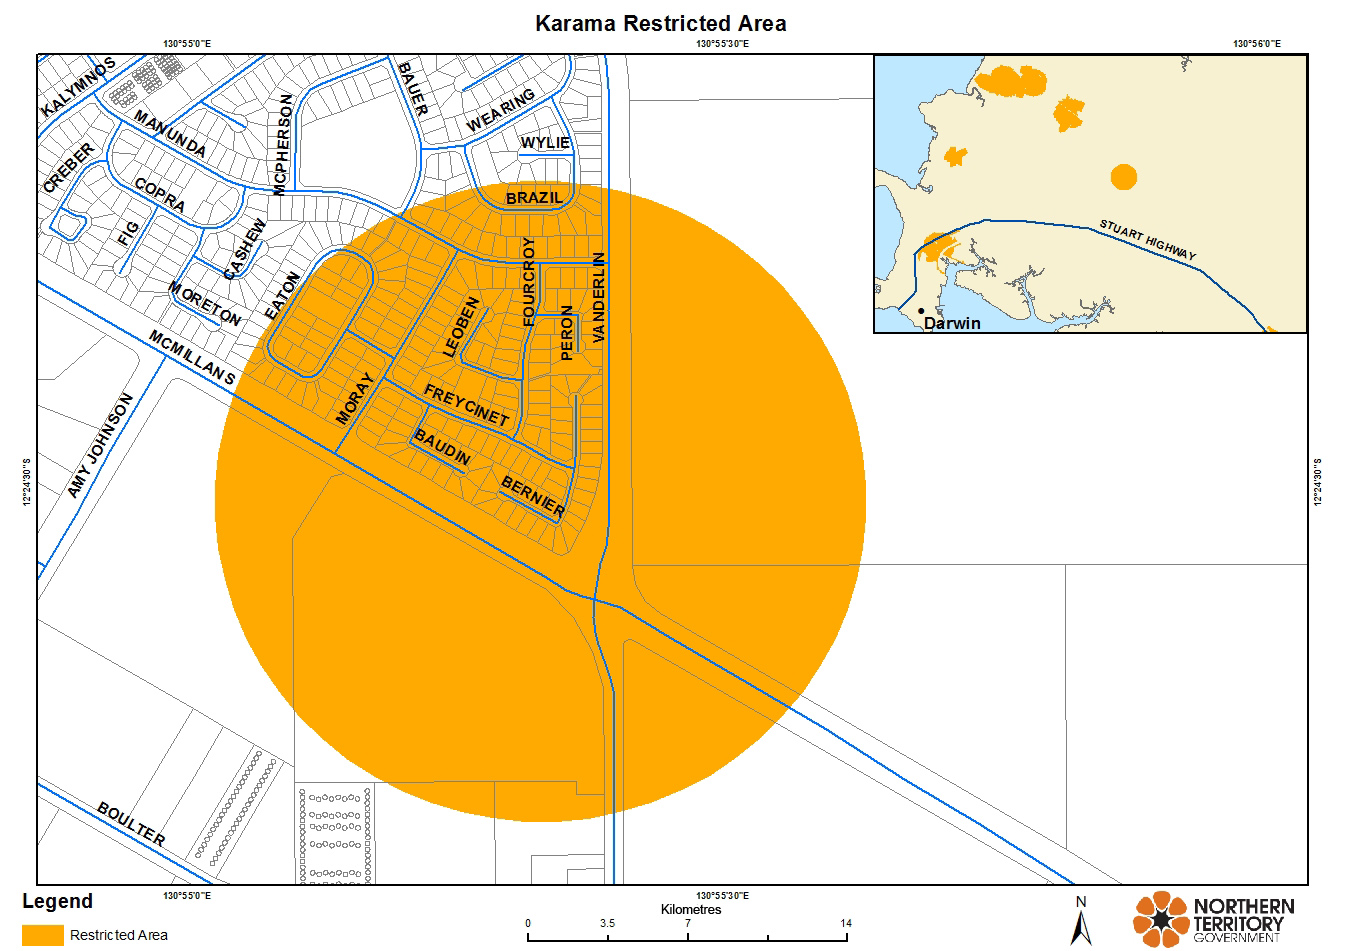 A map showing the area of Karama with citrus plant restrictions